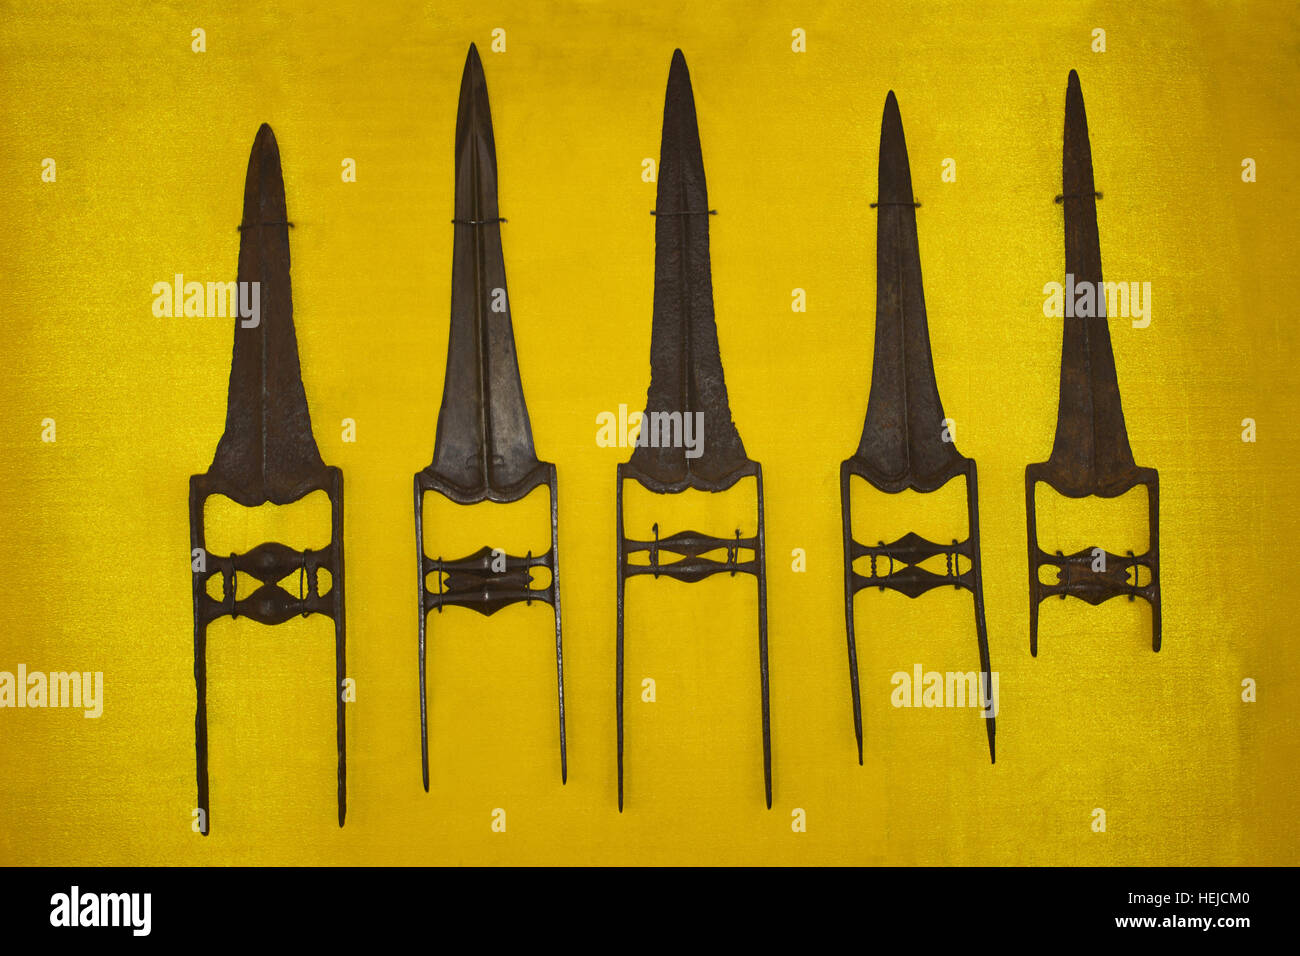 Push Dagger Stock Photos & Push Dagger Stock Images - Alamy